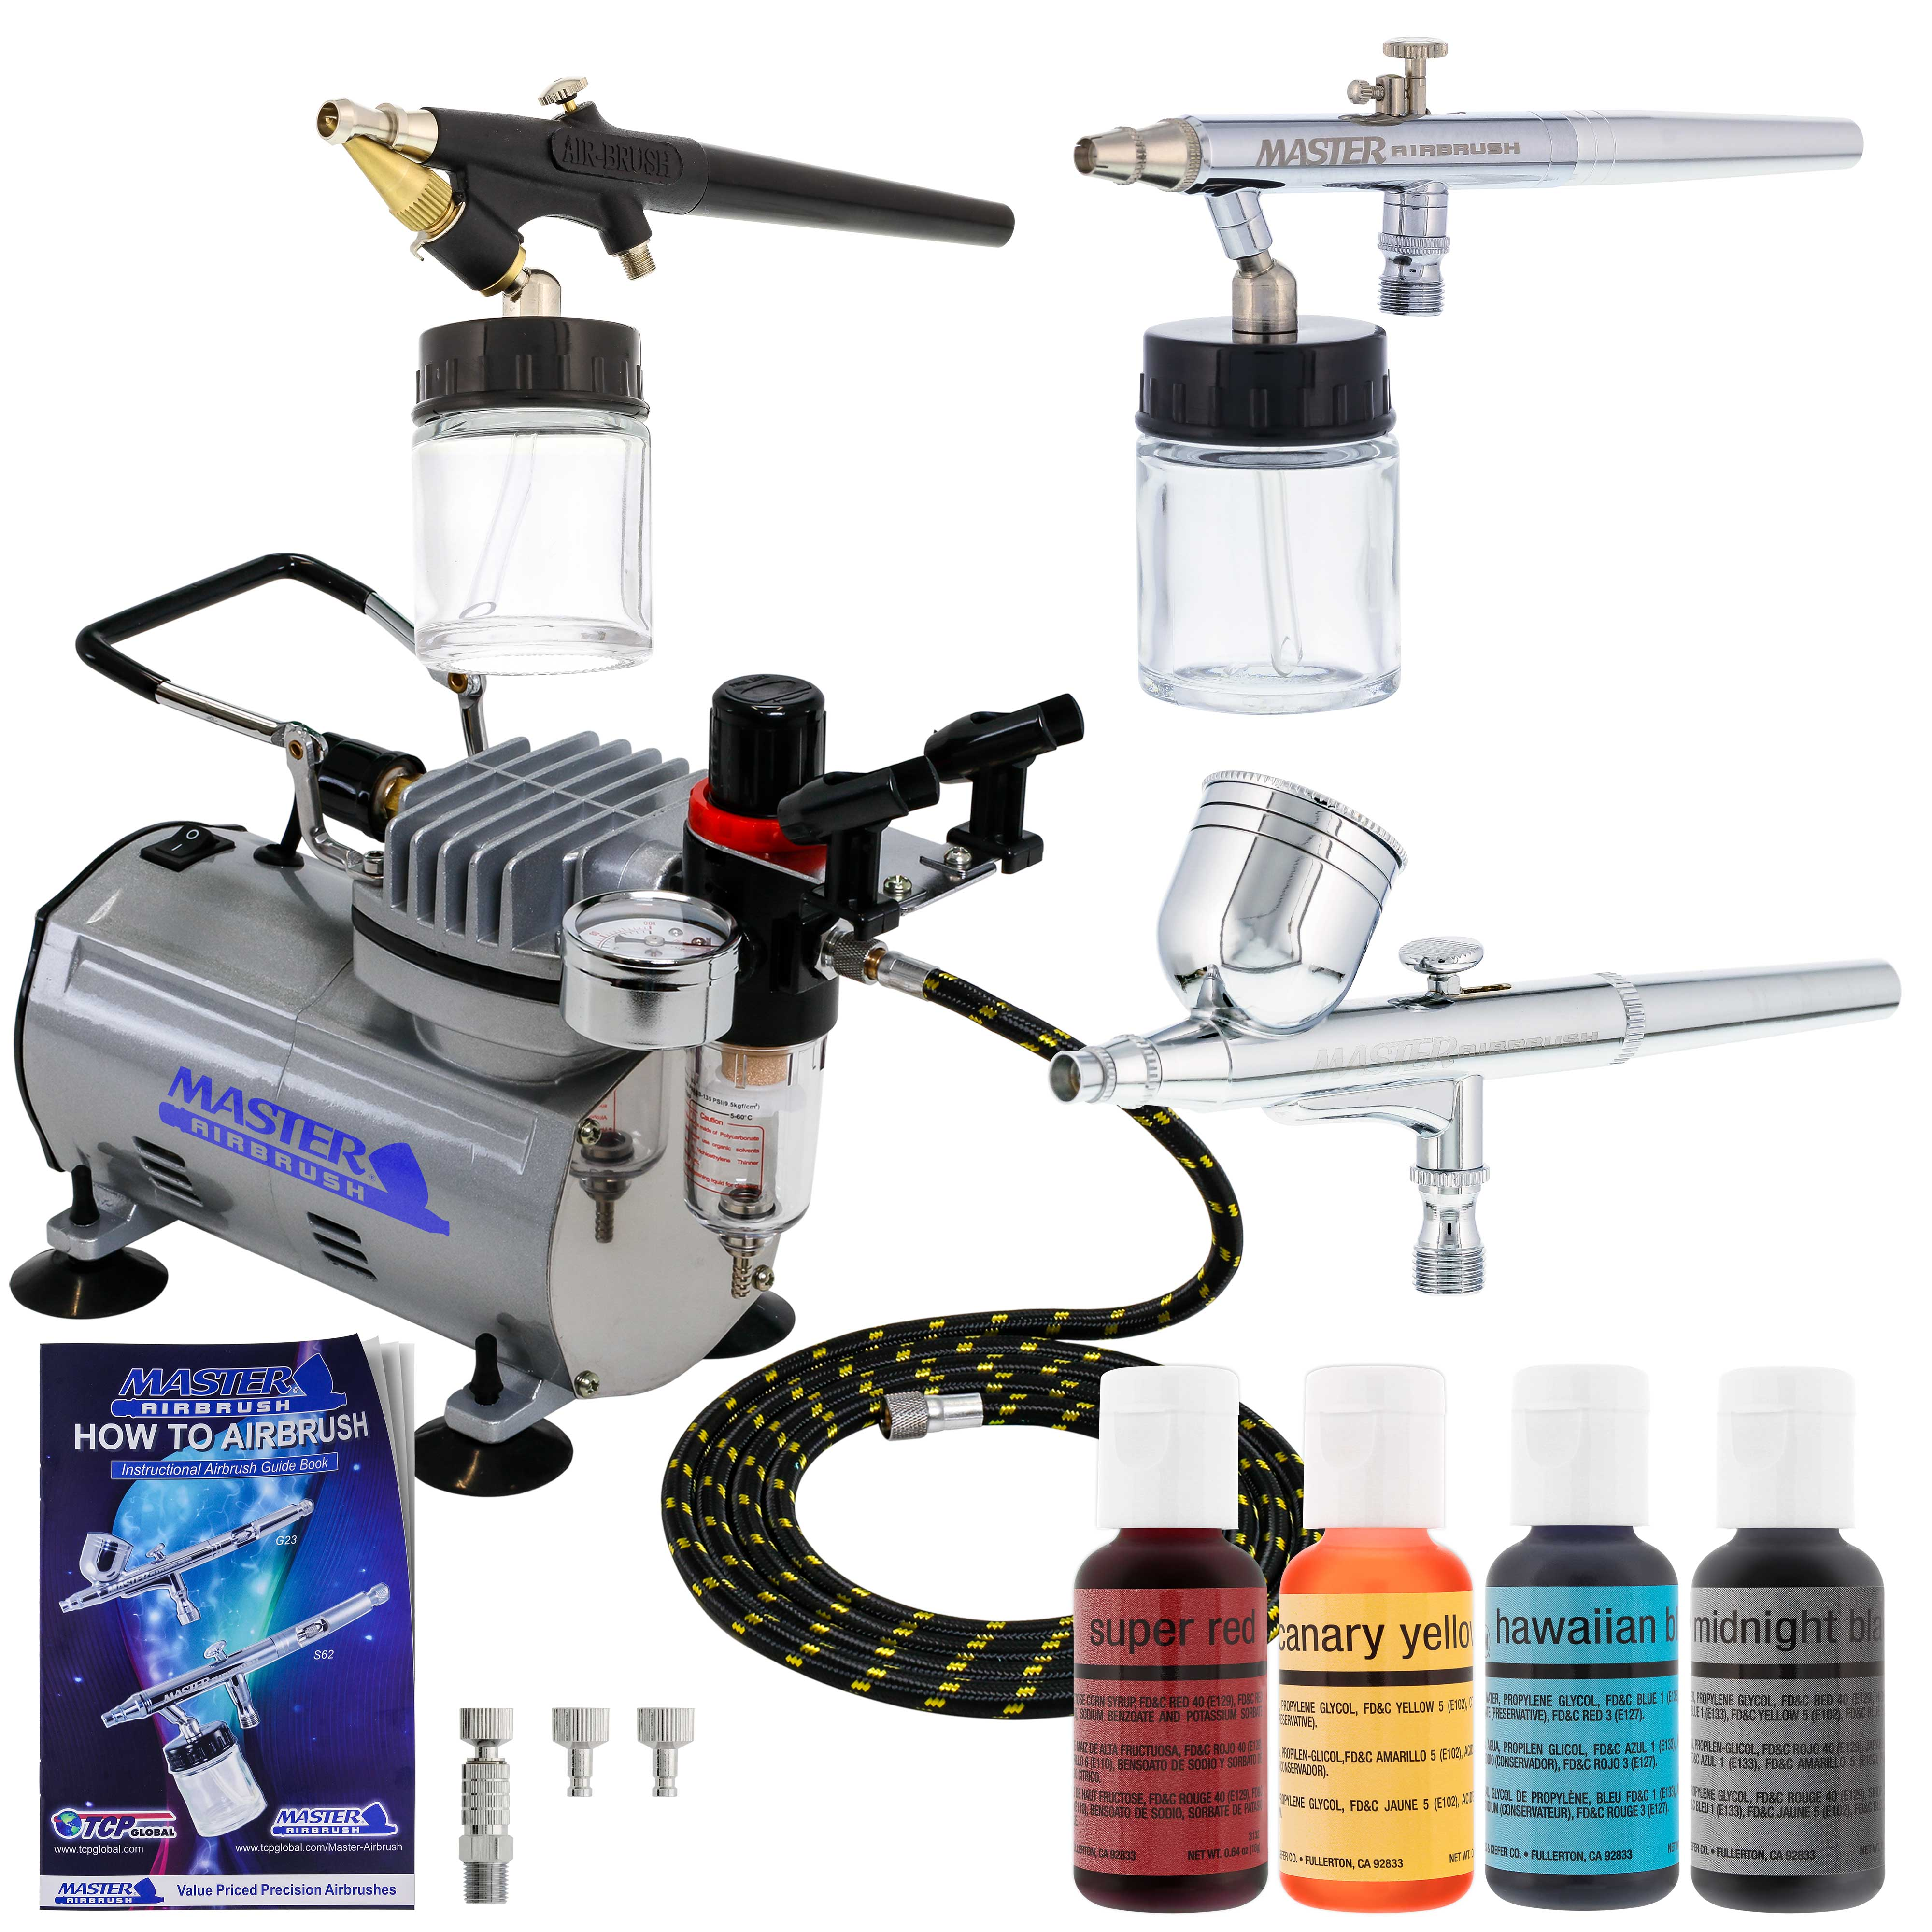 3 Airbrush Cake Decorating Compressor Kit, 4 Color ...